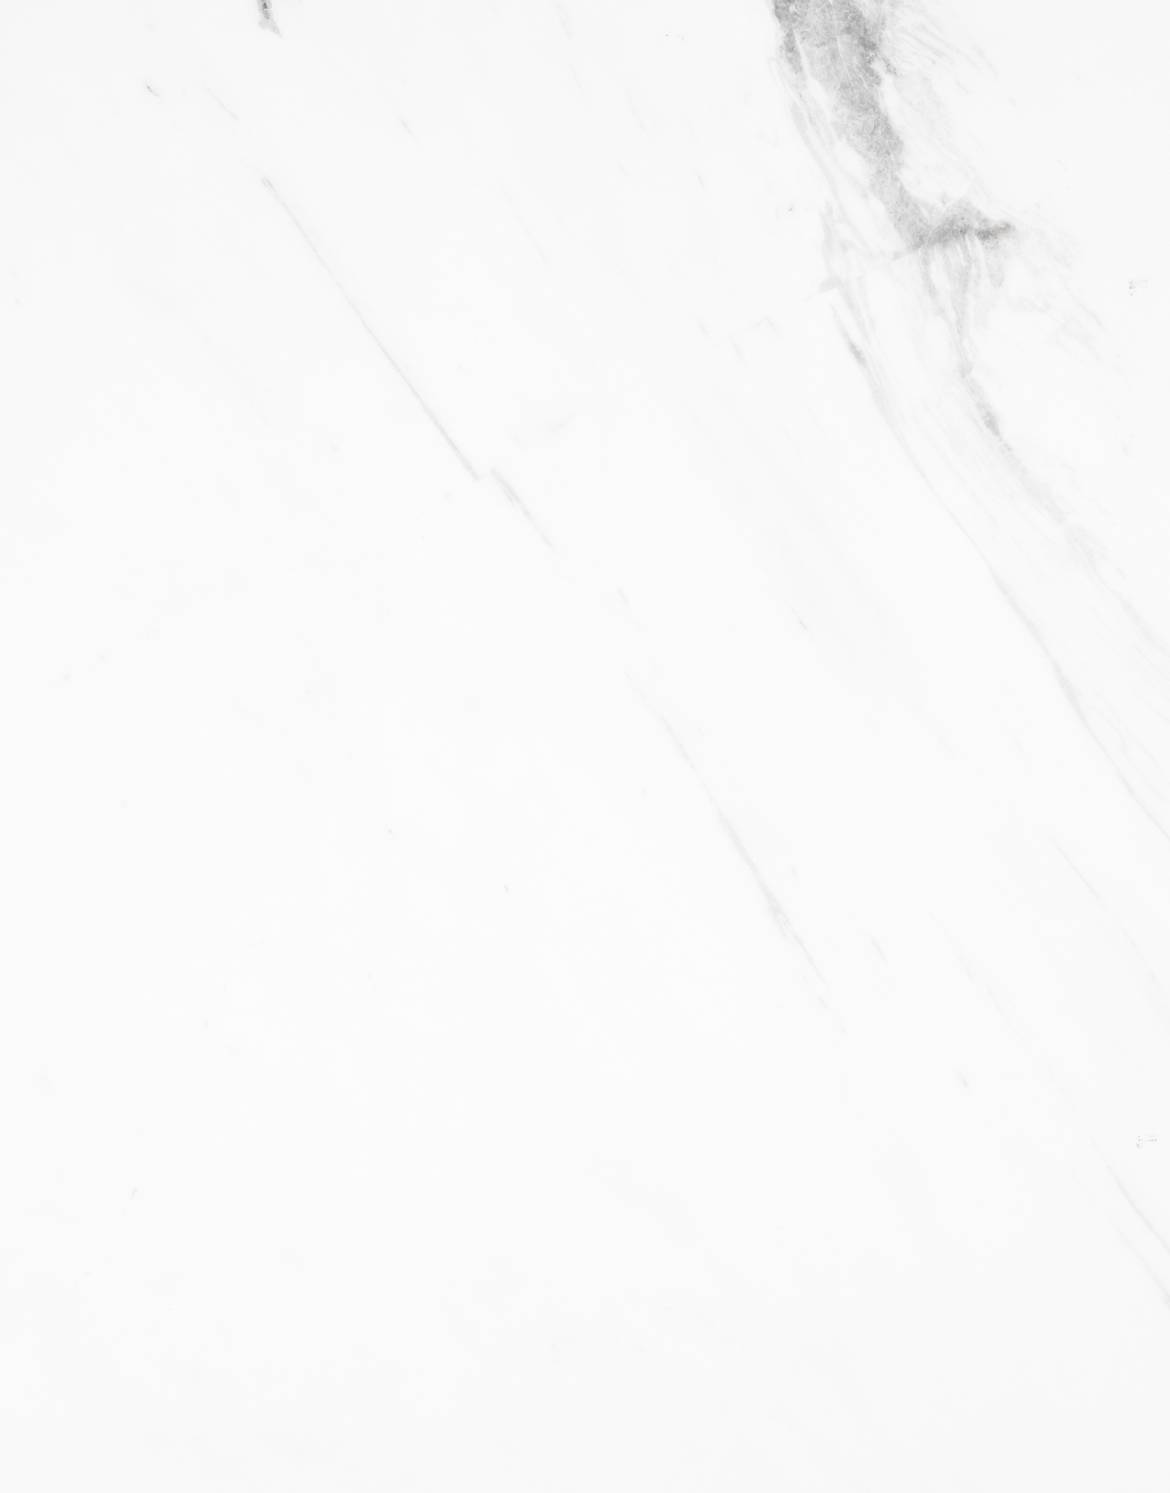 0020_MS.902-CRYSTAL-WHITE-MARBLE-POLISHED.jpg